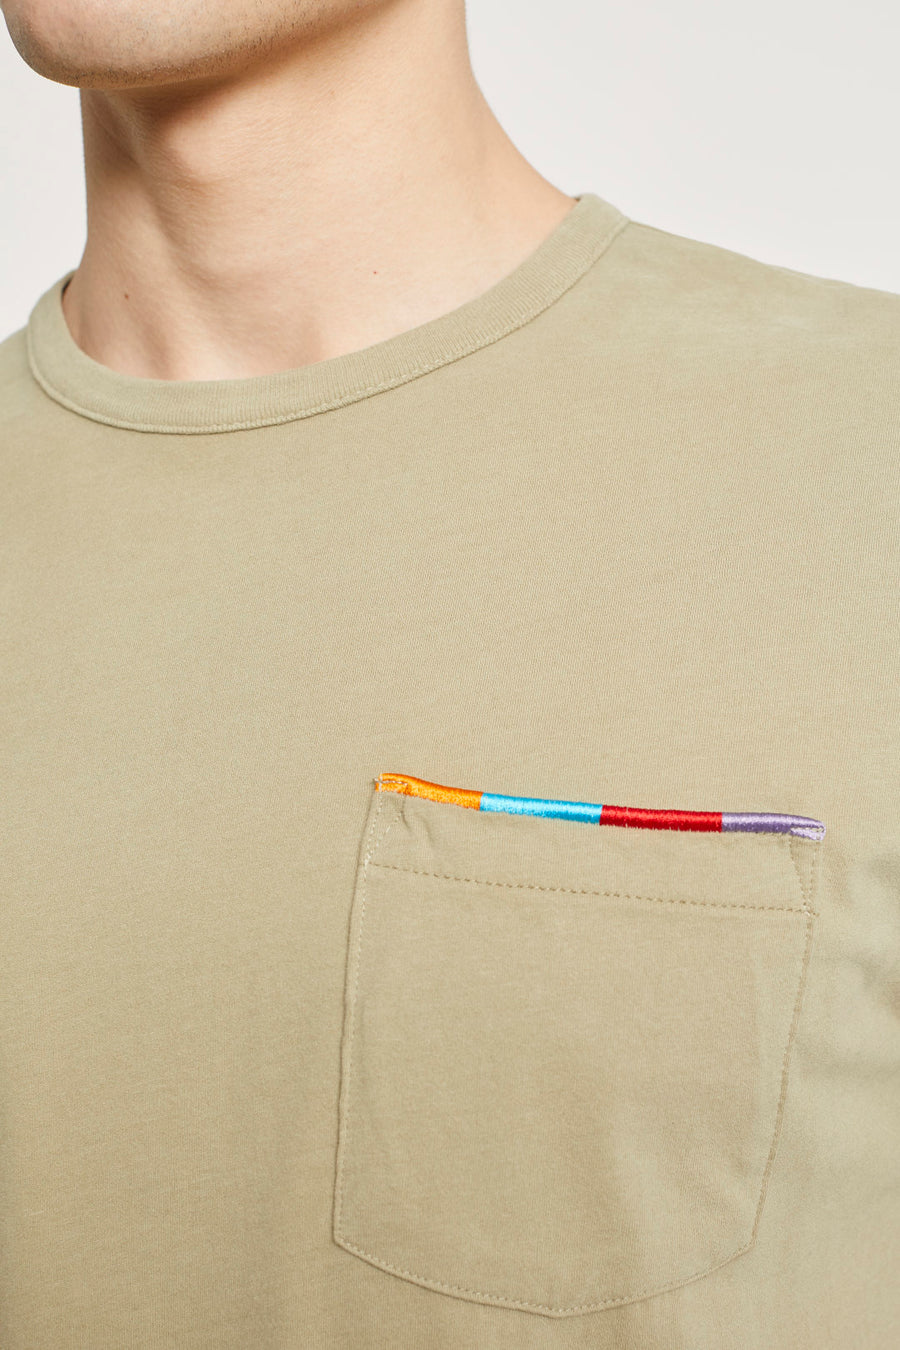 T-Shirt with Embroidery - Cut Hay